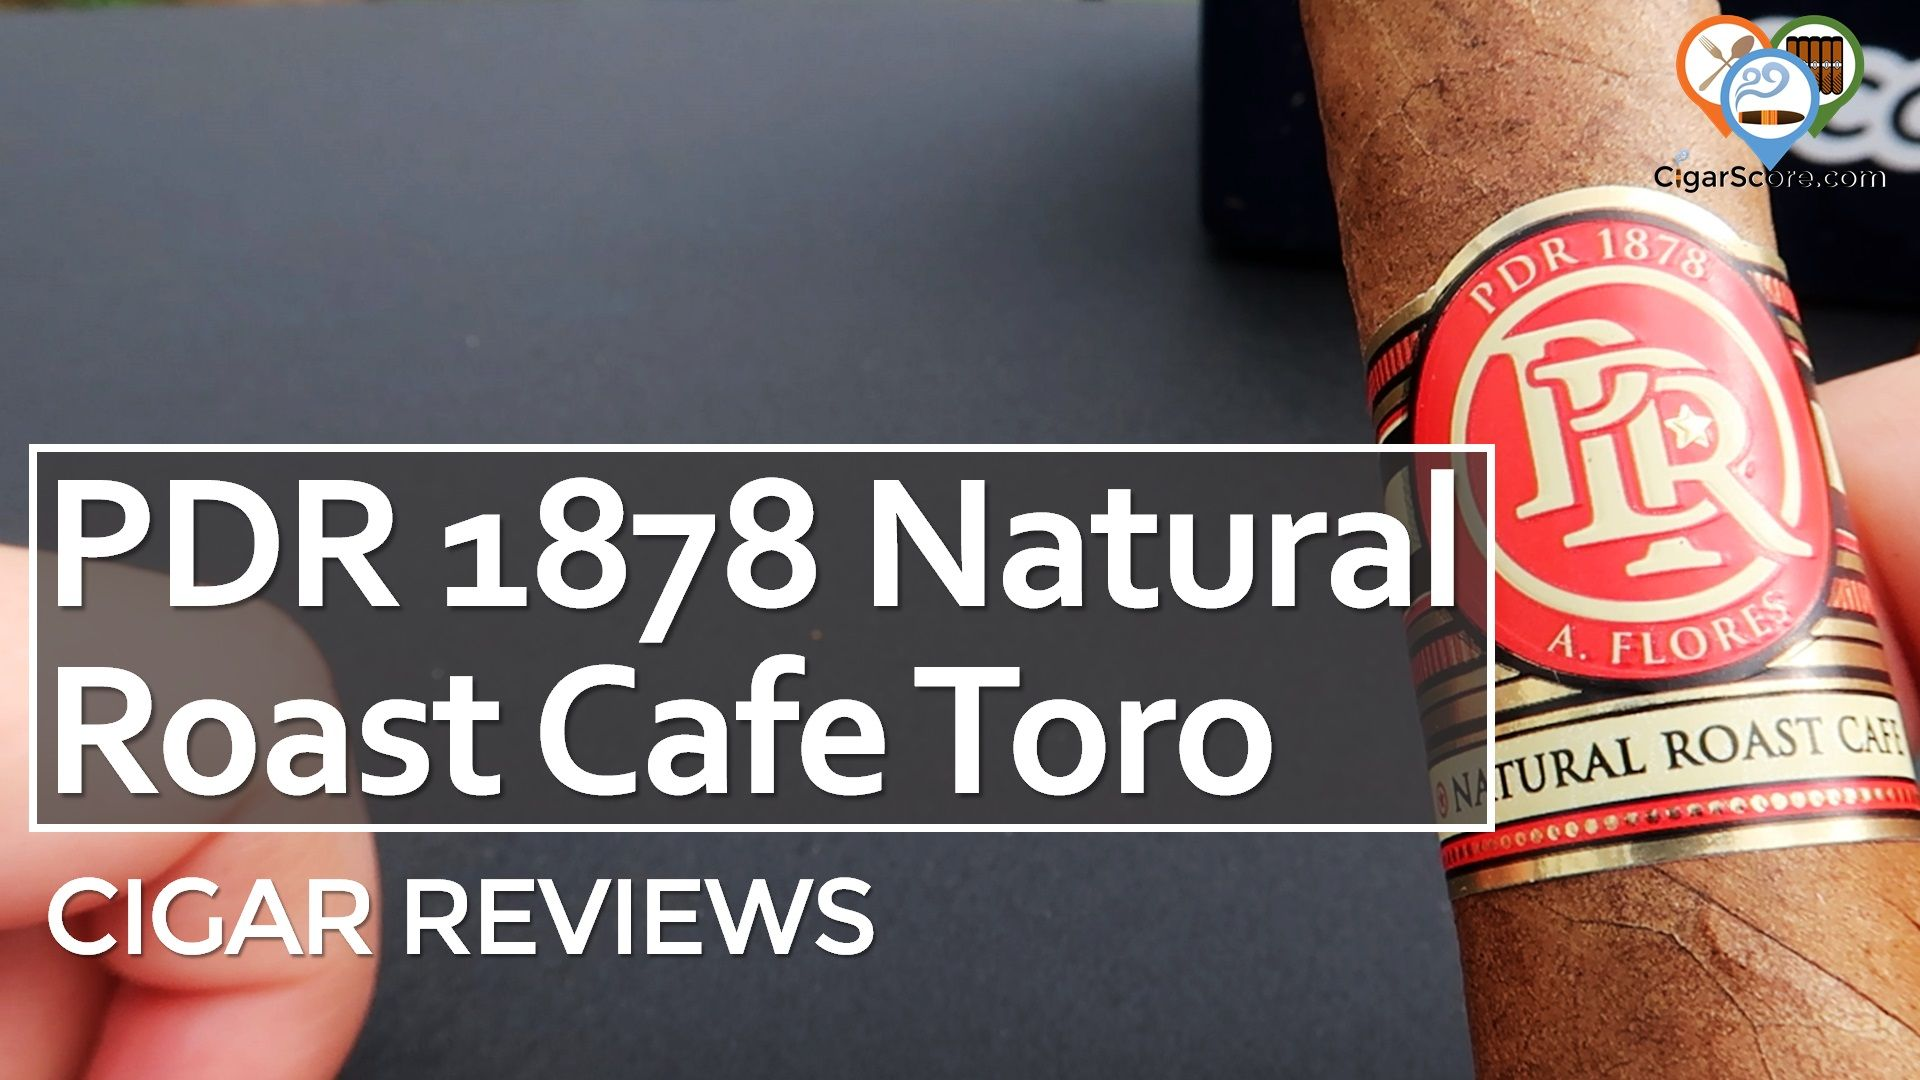 Cigar Review PDR 1878 Natural Roast Cafe Toro